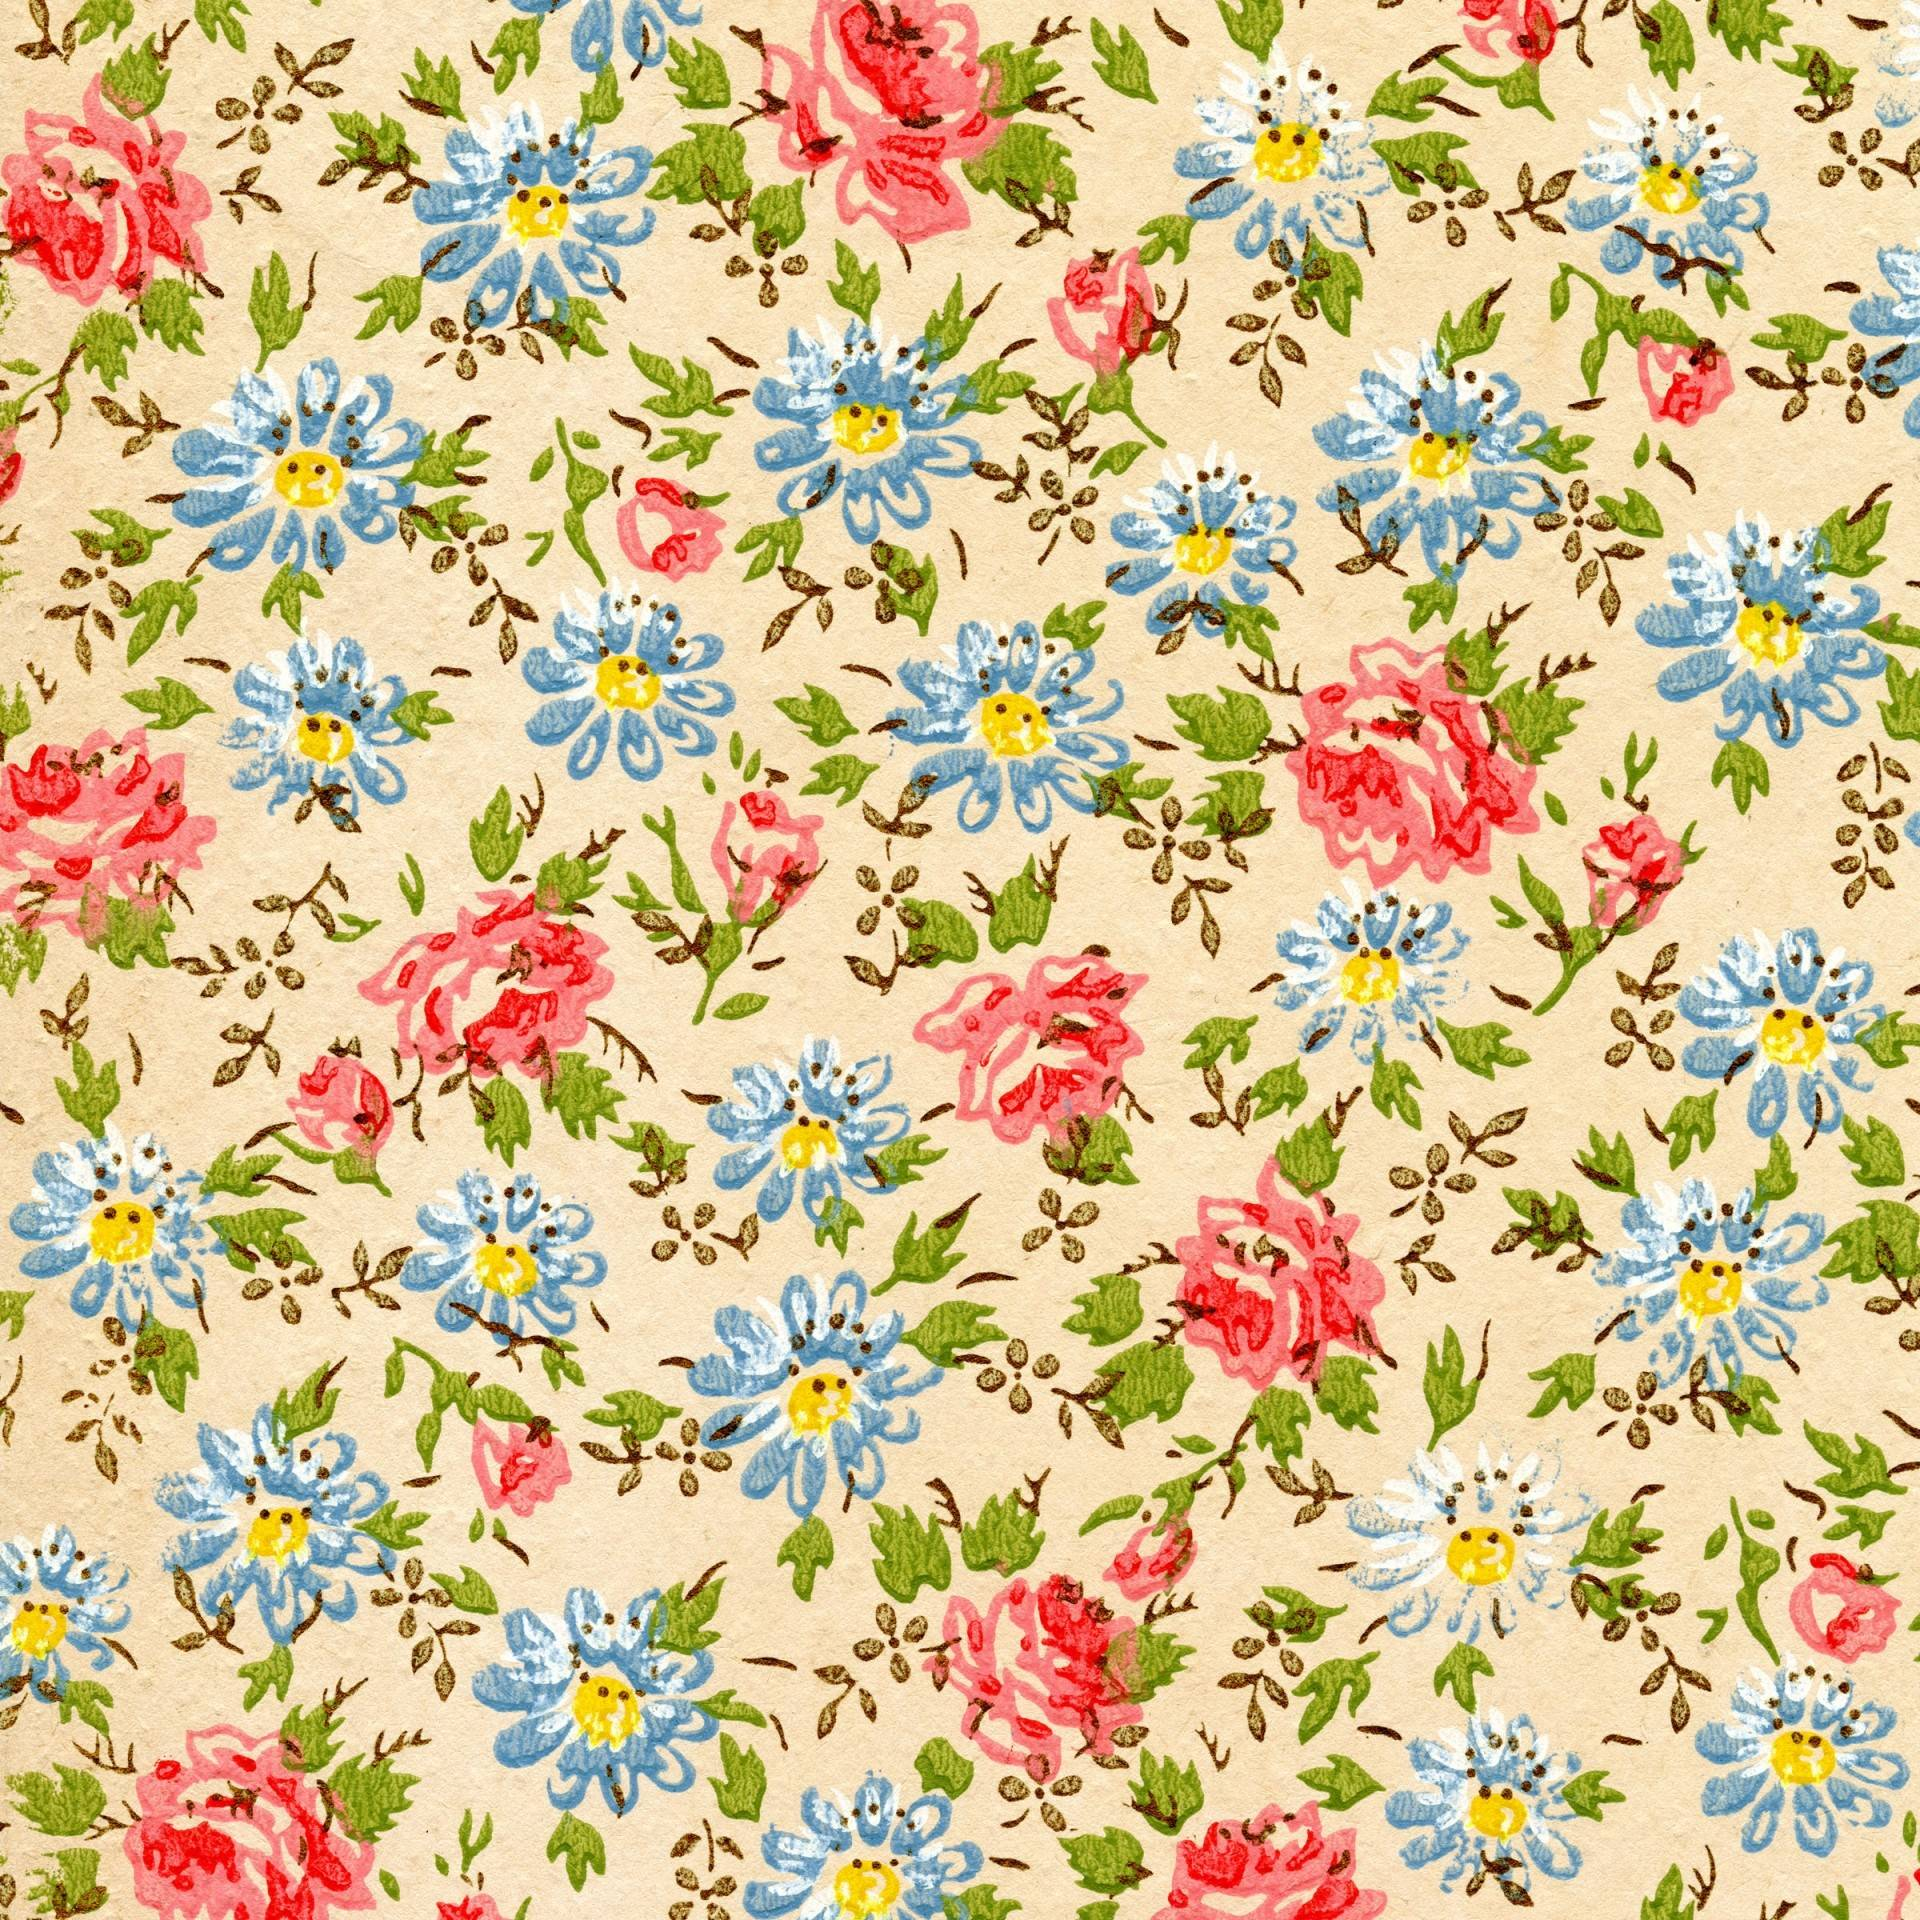 Hipster Flower Wallpapers - Top Free Hipster Flower ...